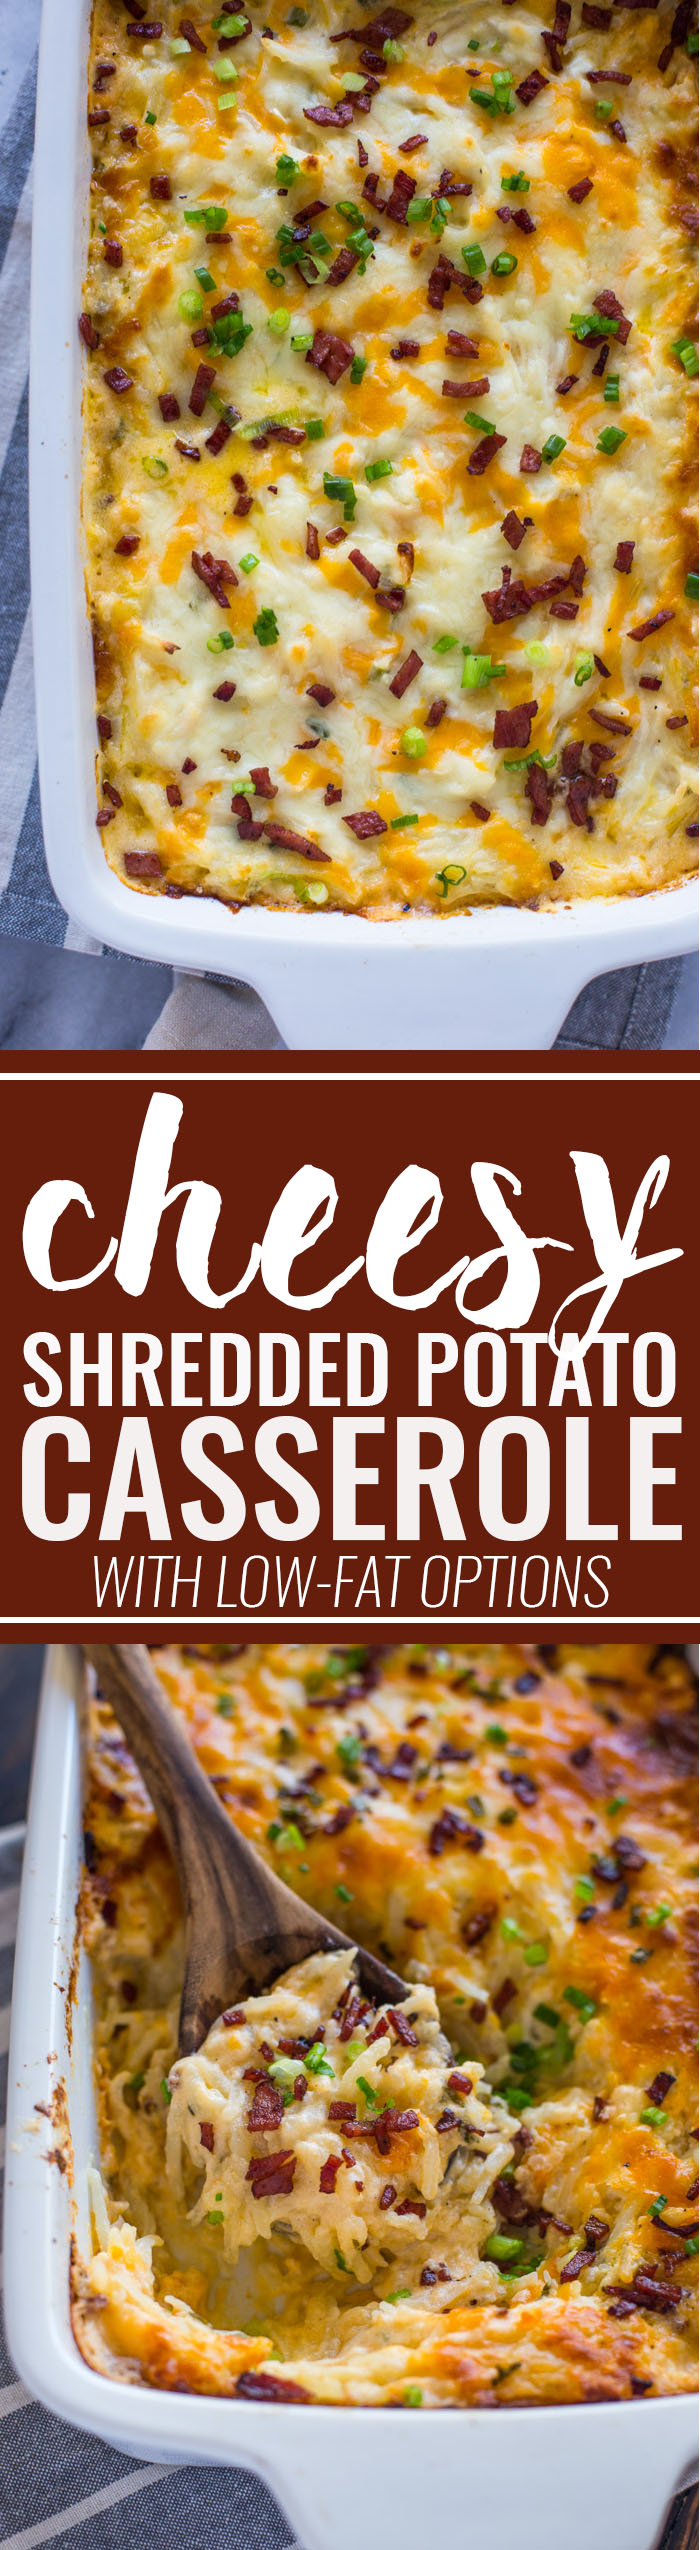 Cheesy Shredded Potato Casserole (with Low-fat Option)